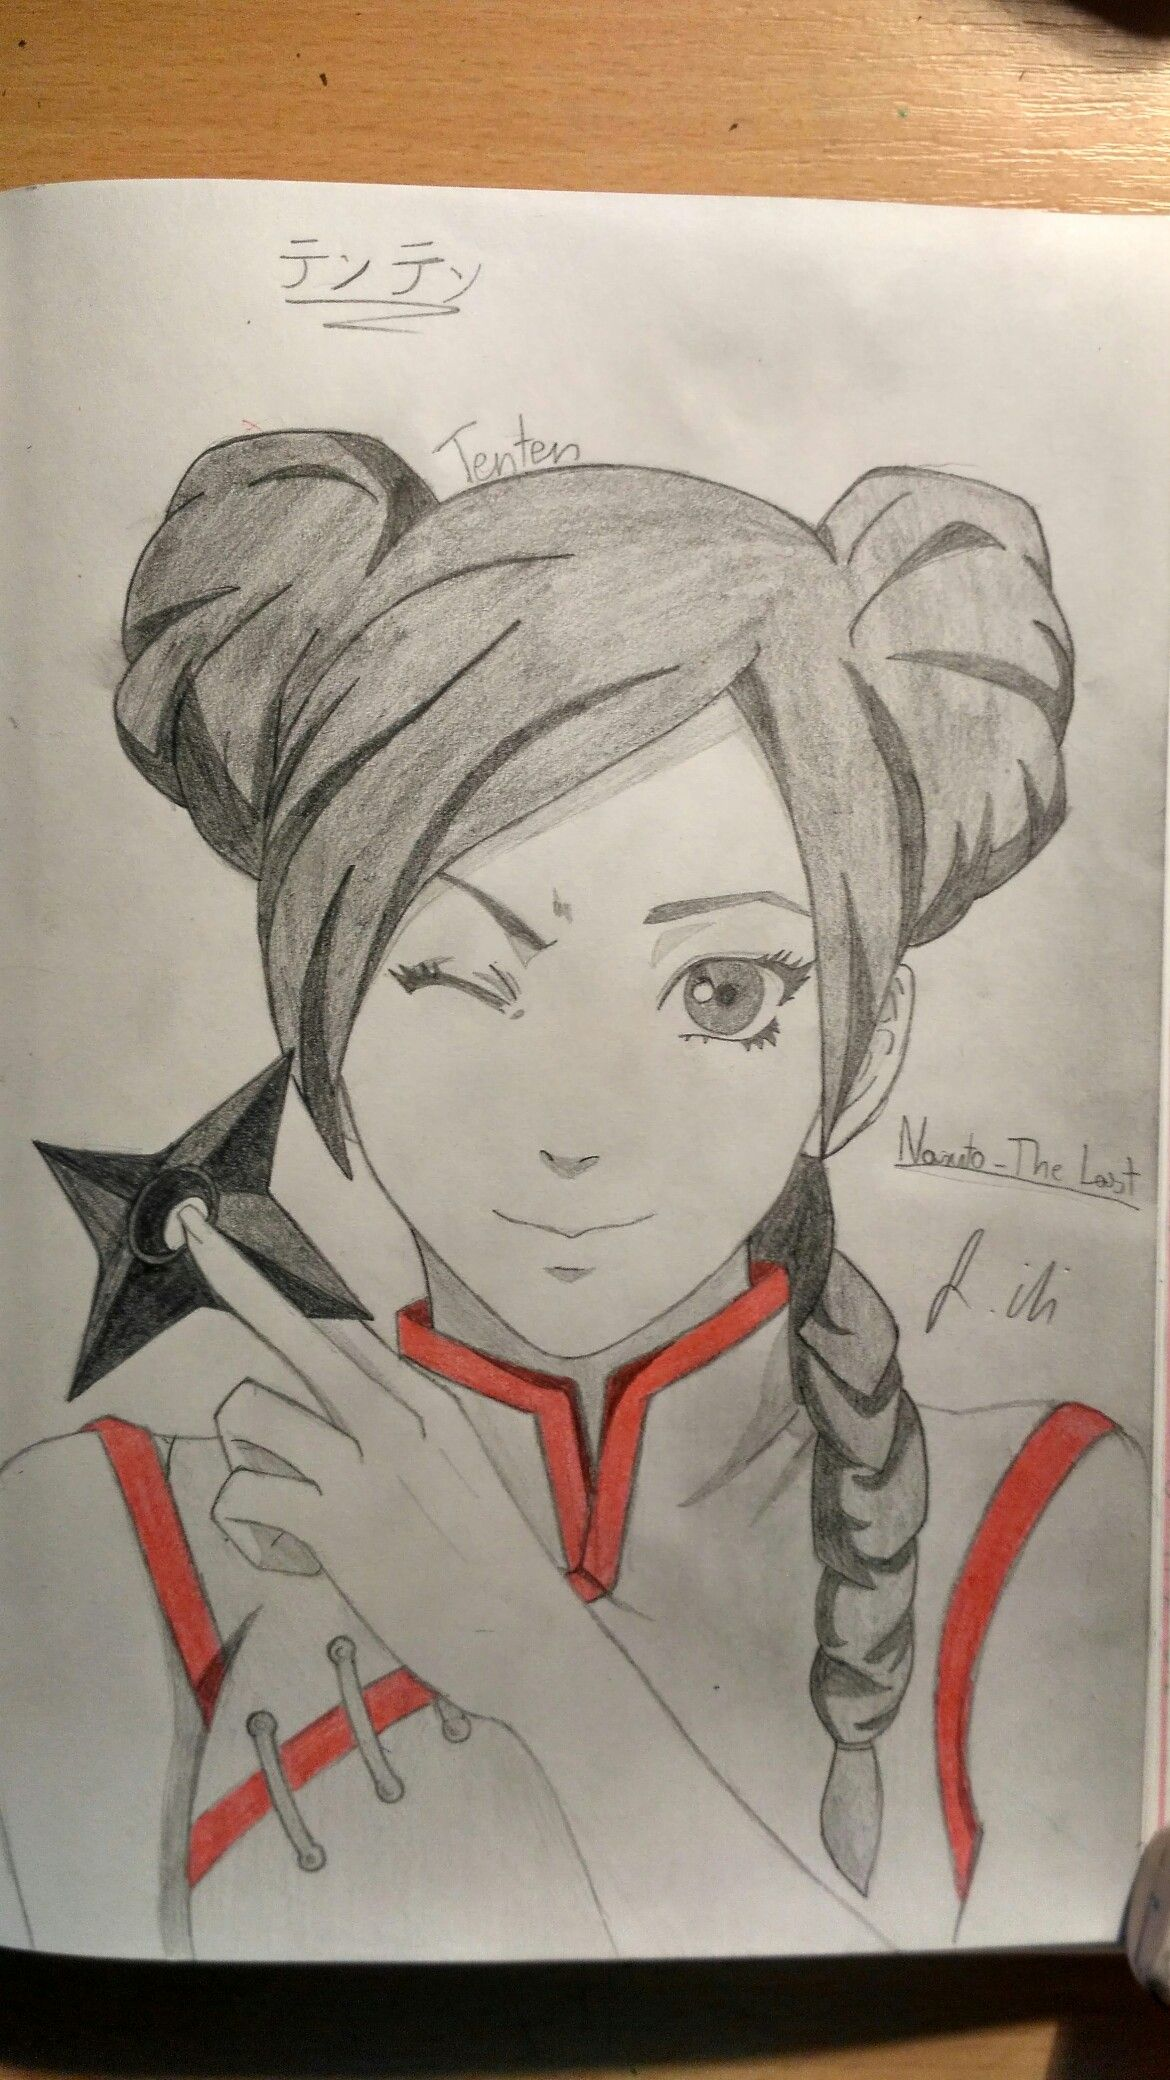 She Is Tenten From Naruto The Last She S A Real Personality